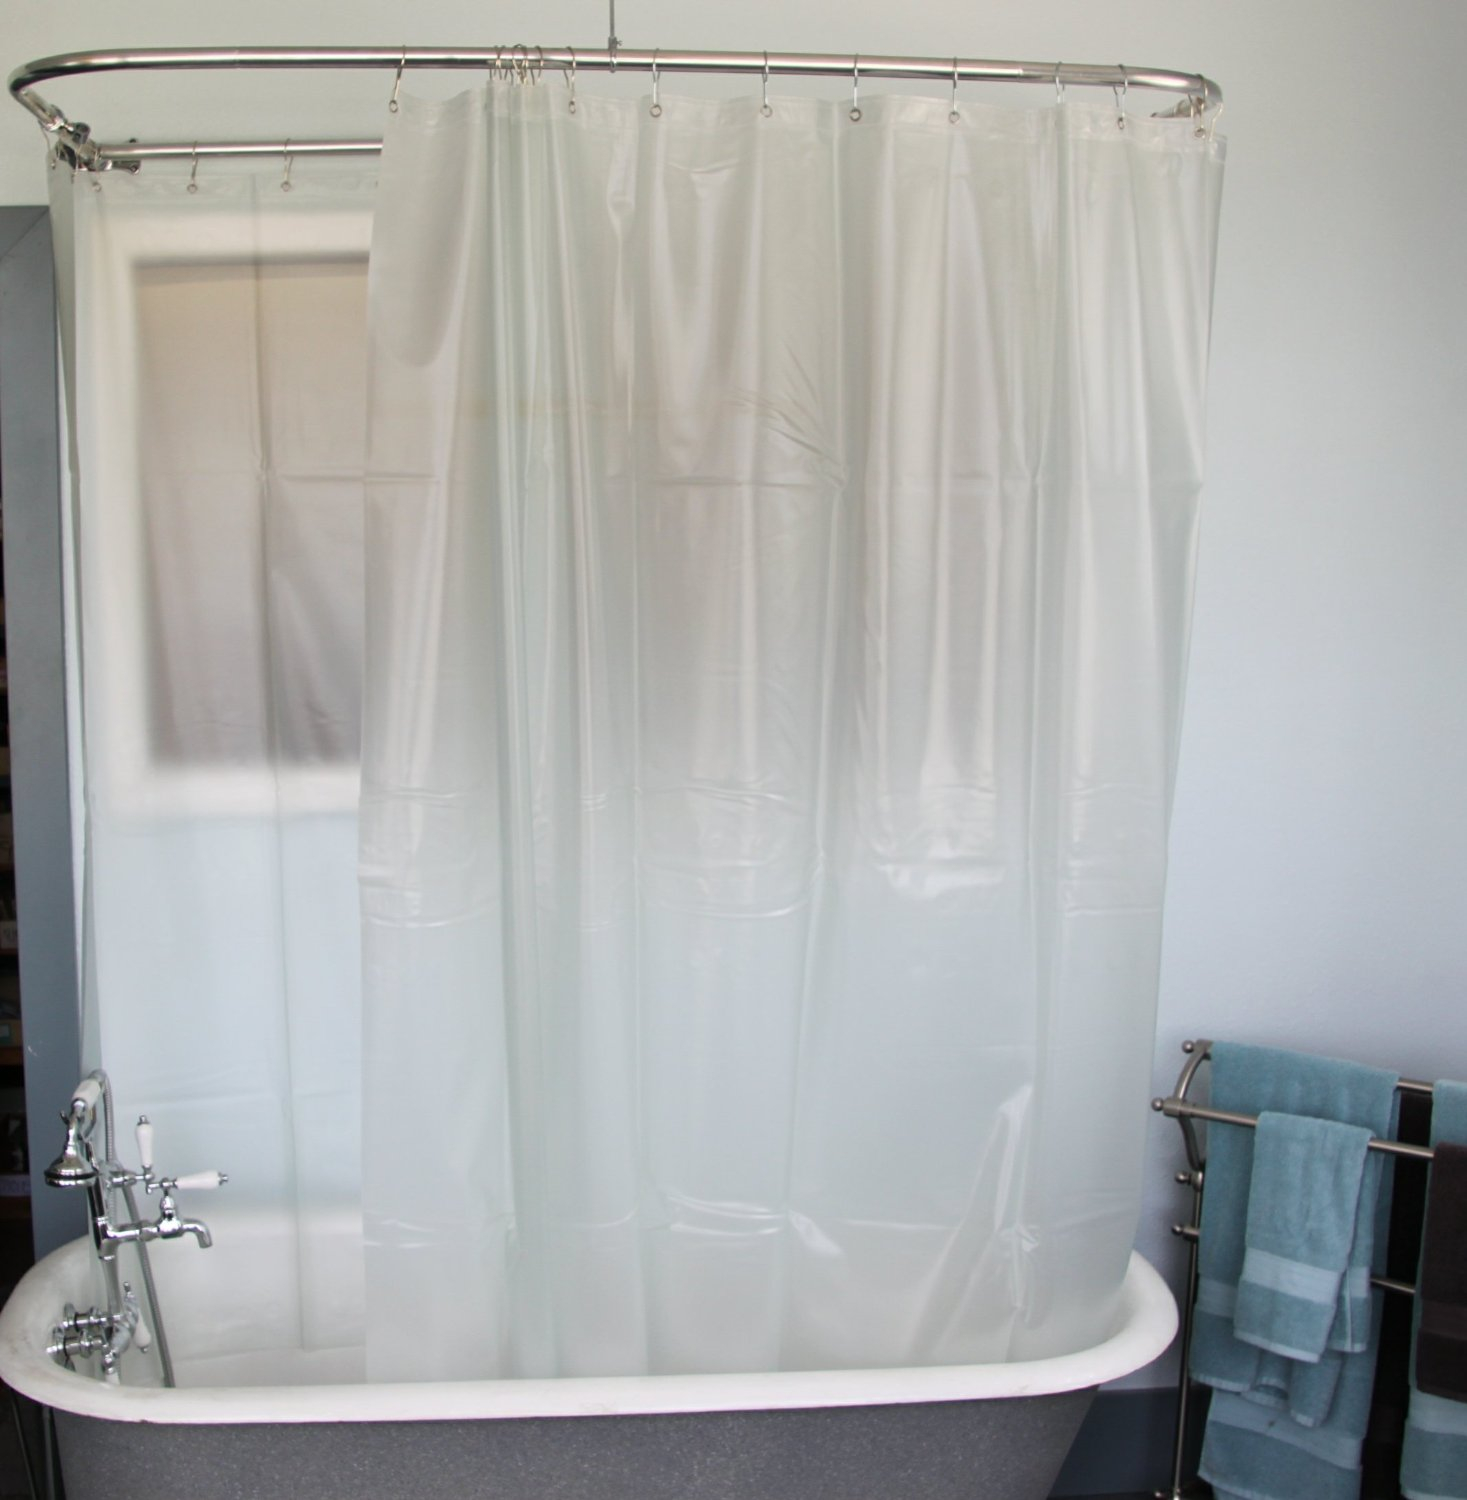 home usc liners gauge packaging shower fashions vinyl carnation curtain large liner products premium package inc